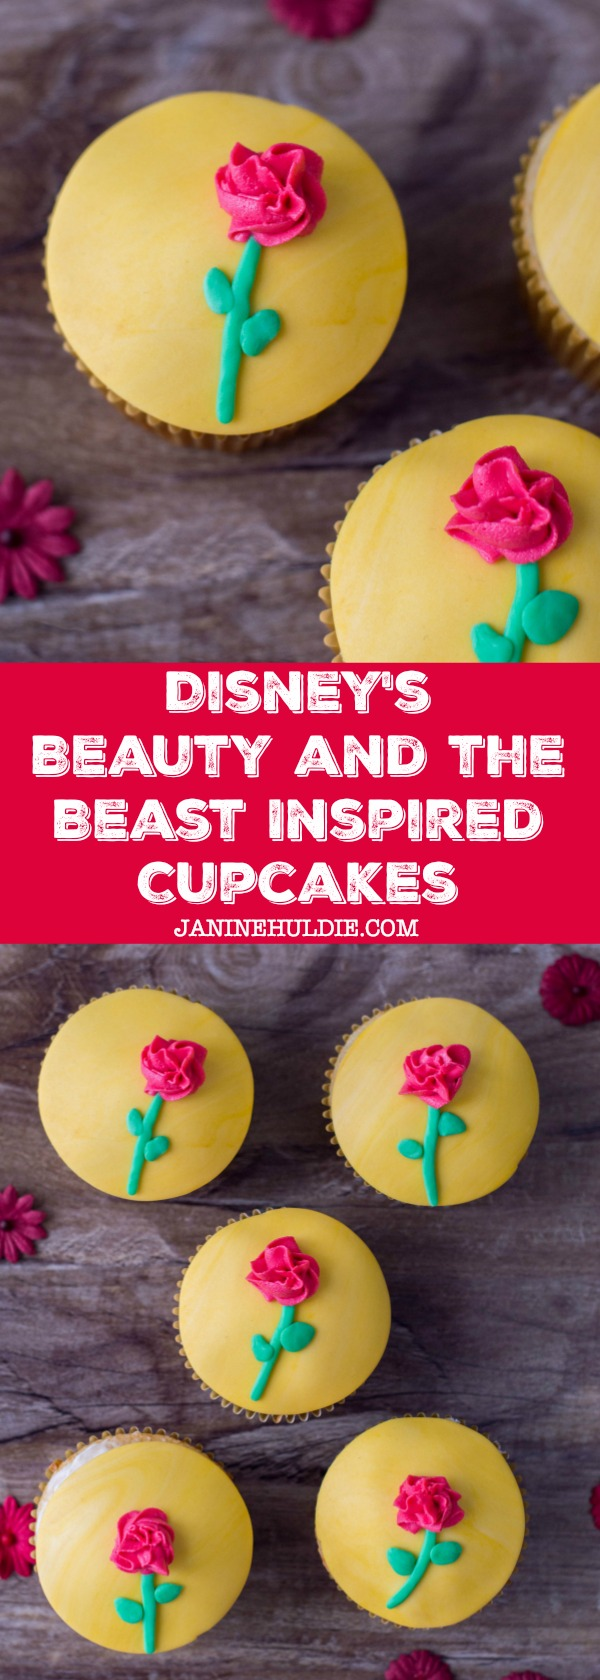 Disney's Beauty and the Beast Inspired Cupcakes Recipe